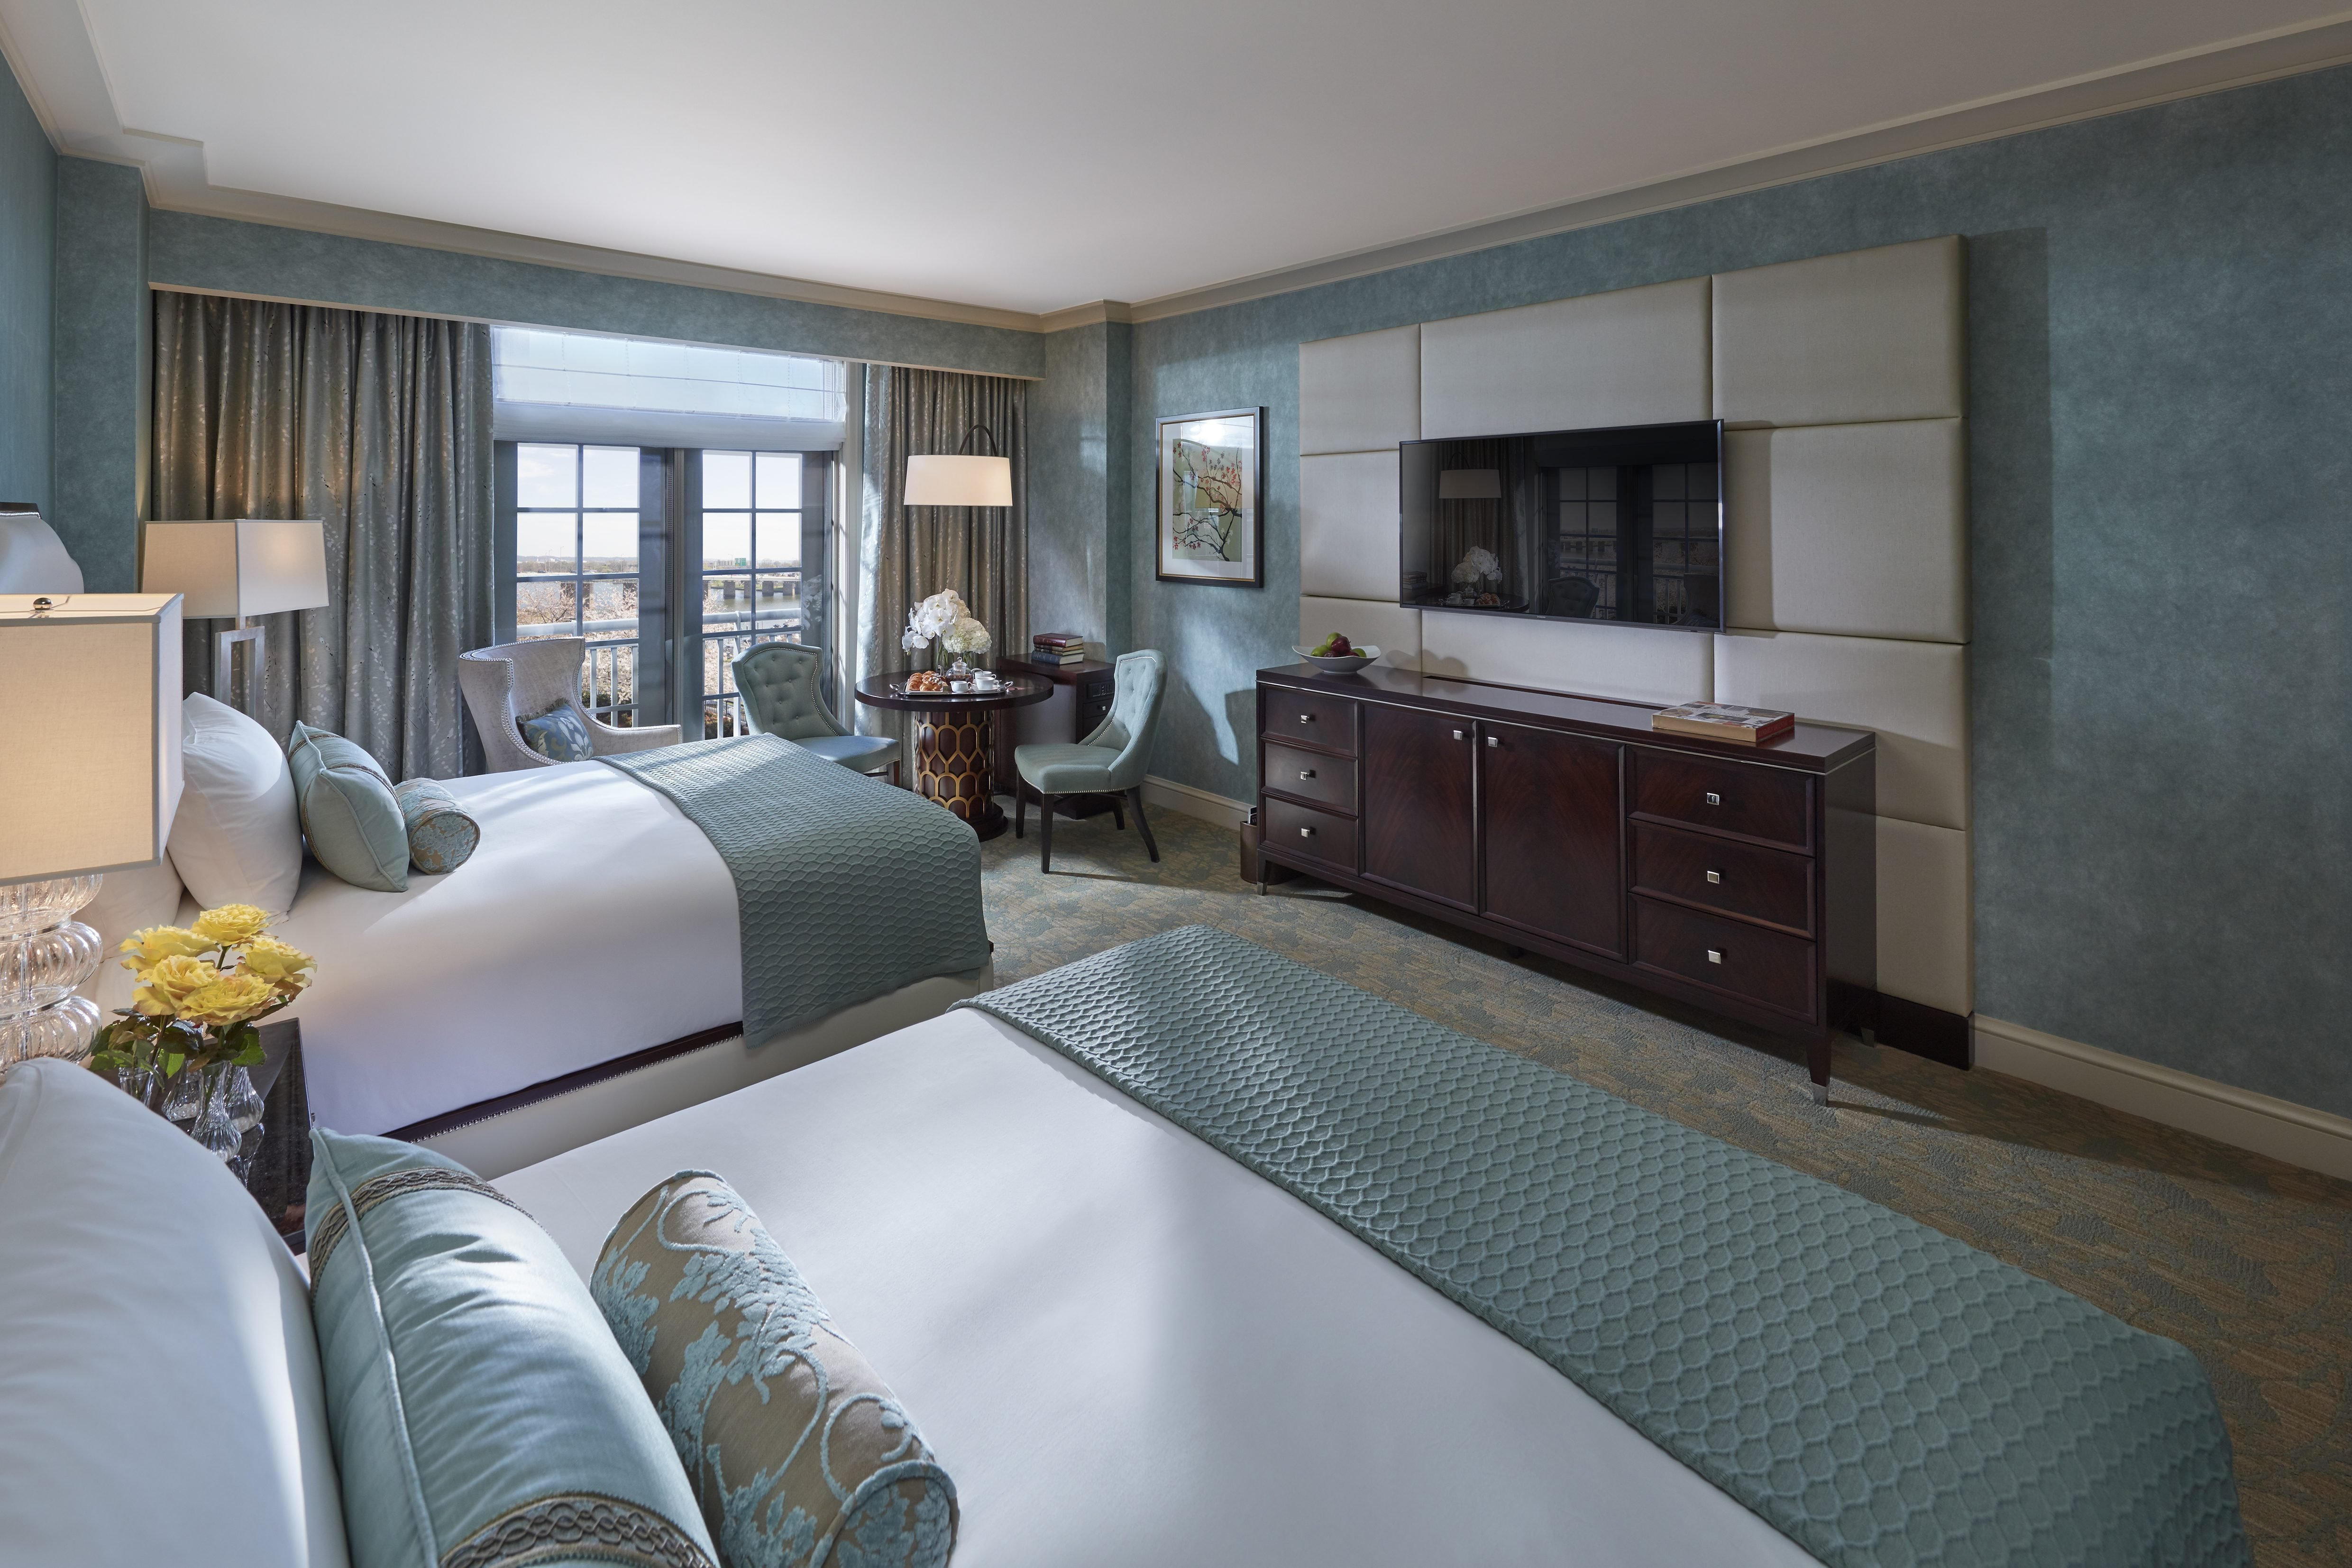 Best Luxury 5 Star Hotel National Mall Mandarin Oriental Washington D C With Pictures